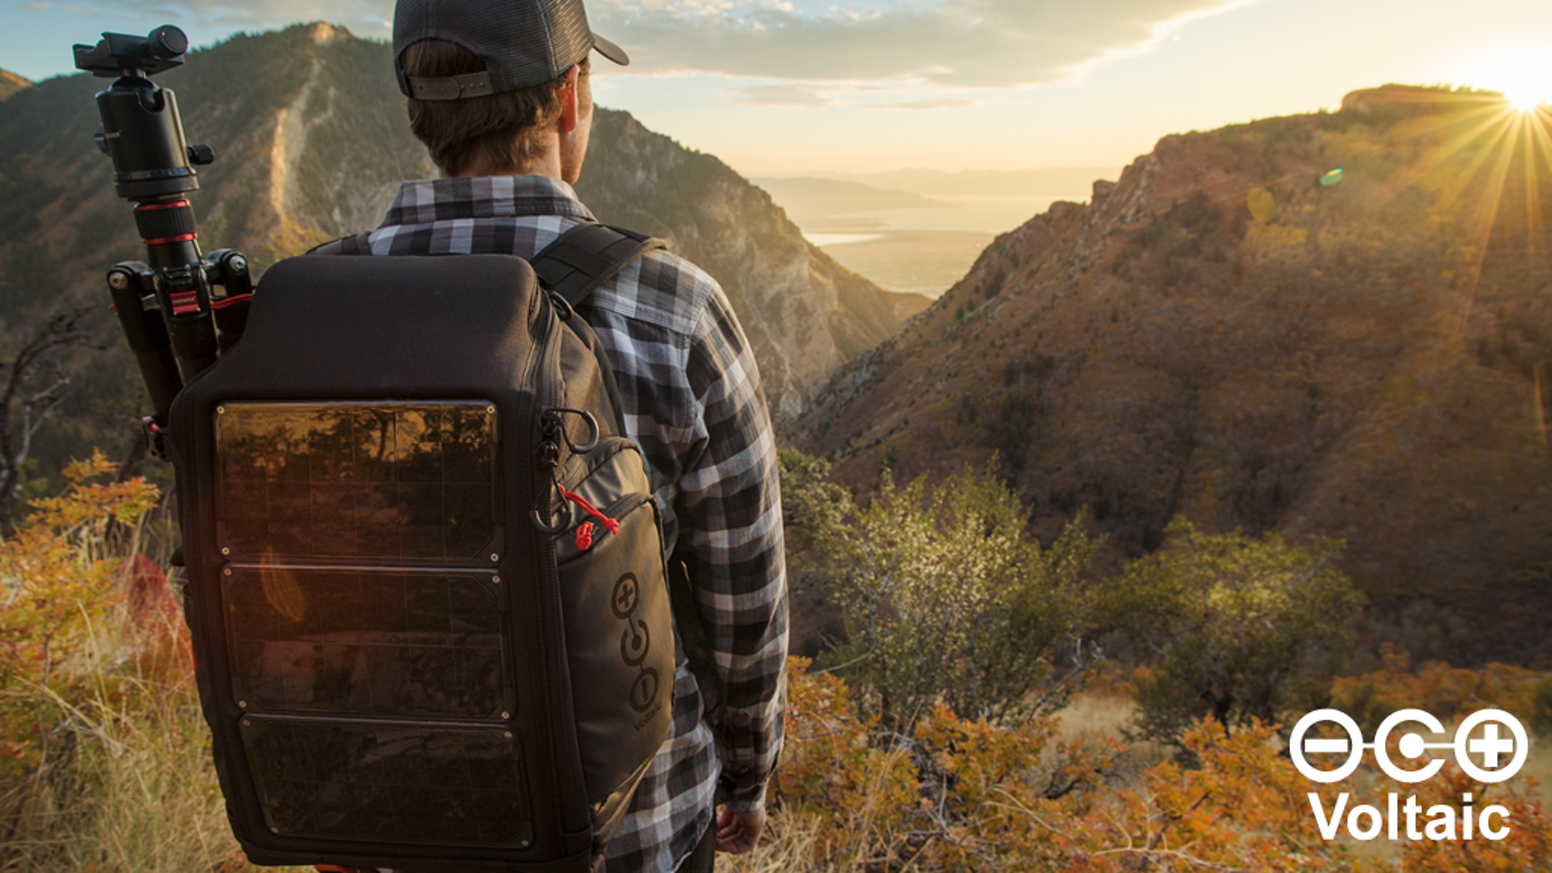 We've perfected our iconic backpack, providing portable power for photographers, travelers, and everyday explorers. Get yours today at voltaicsystems.com